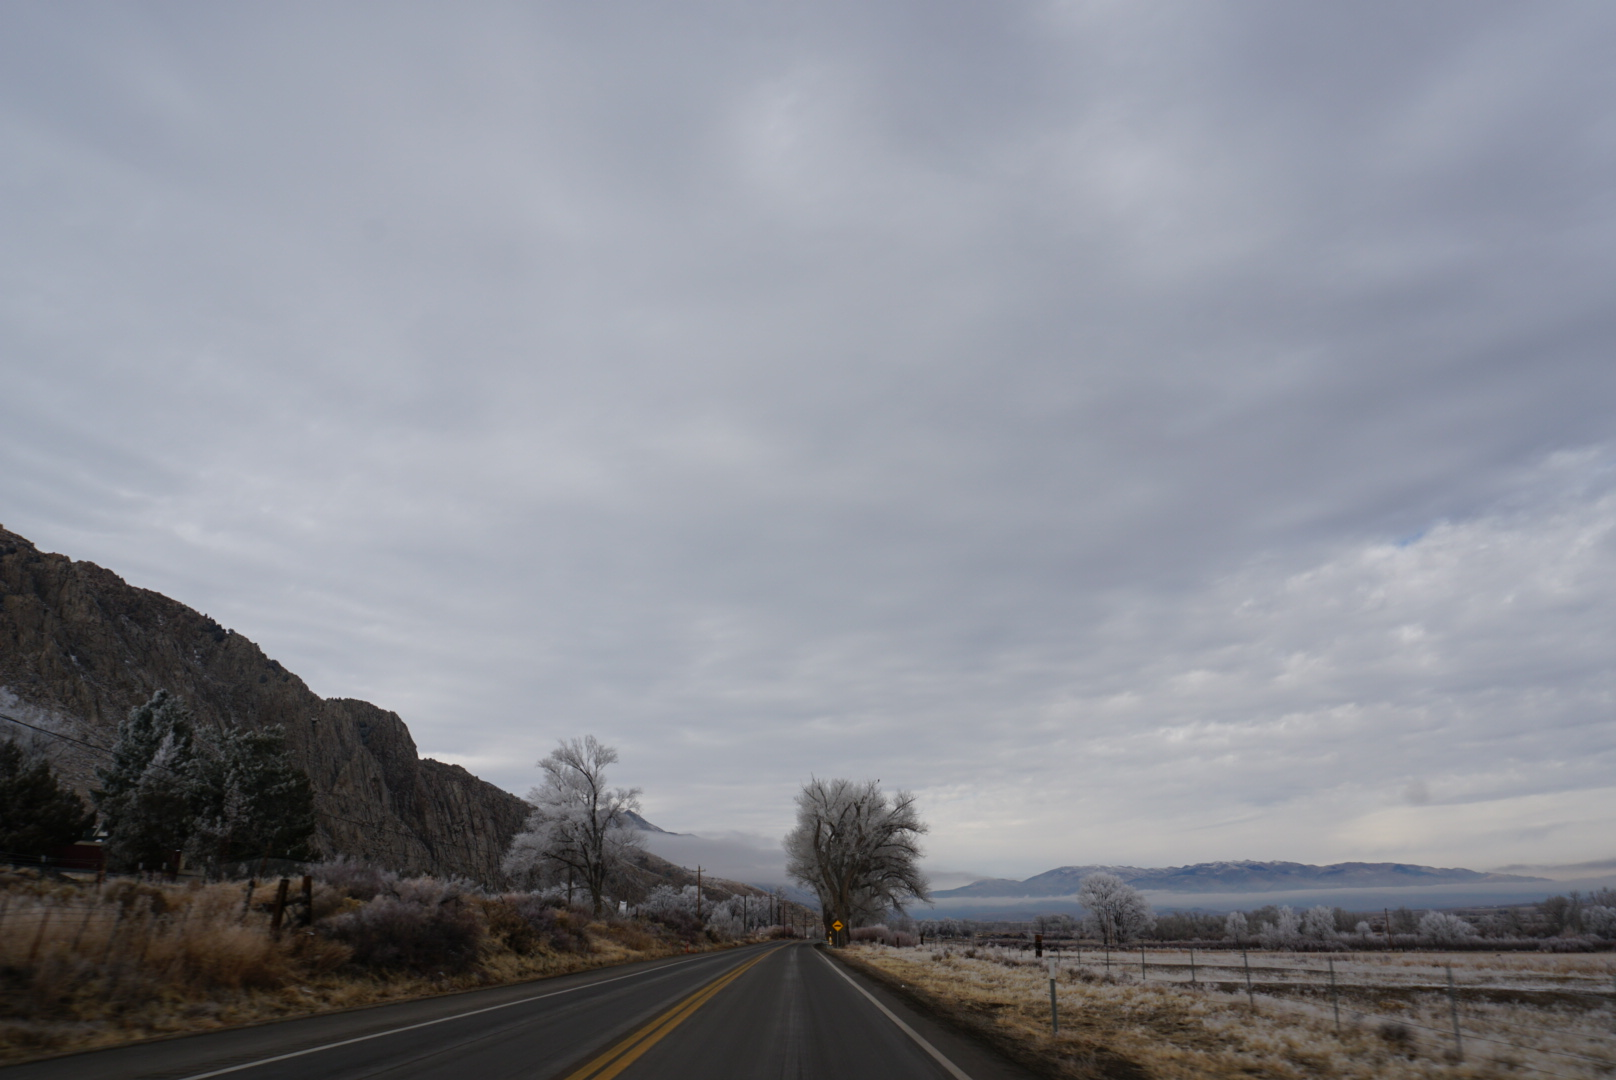 On the road from Mammoth Lakes, CA to South Lake Tahoe